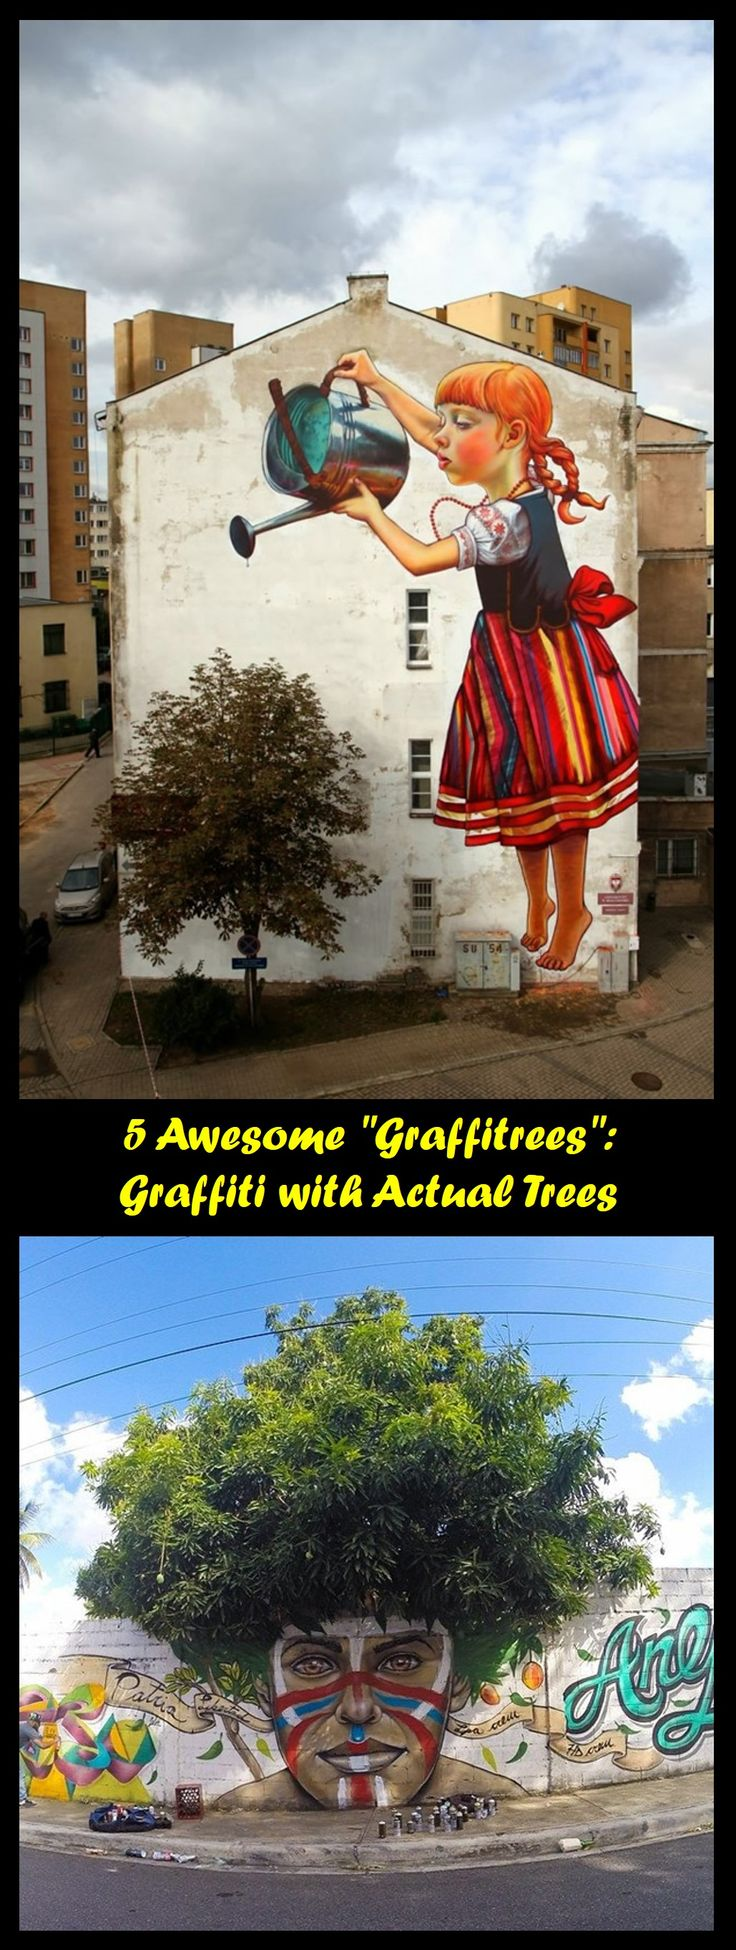 "5 Awesome ""Graffitrees"": Graffiti with Actual Trees! #graffiti #ekcko"